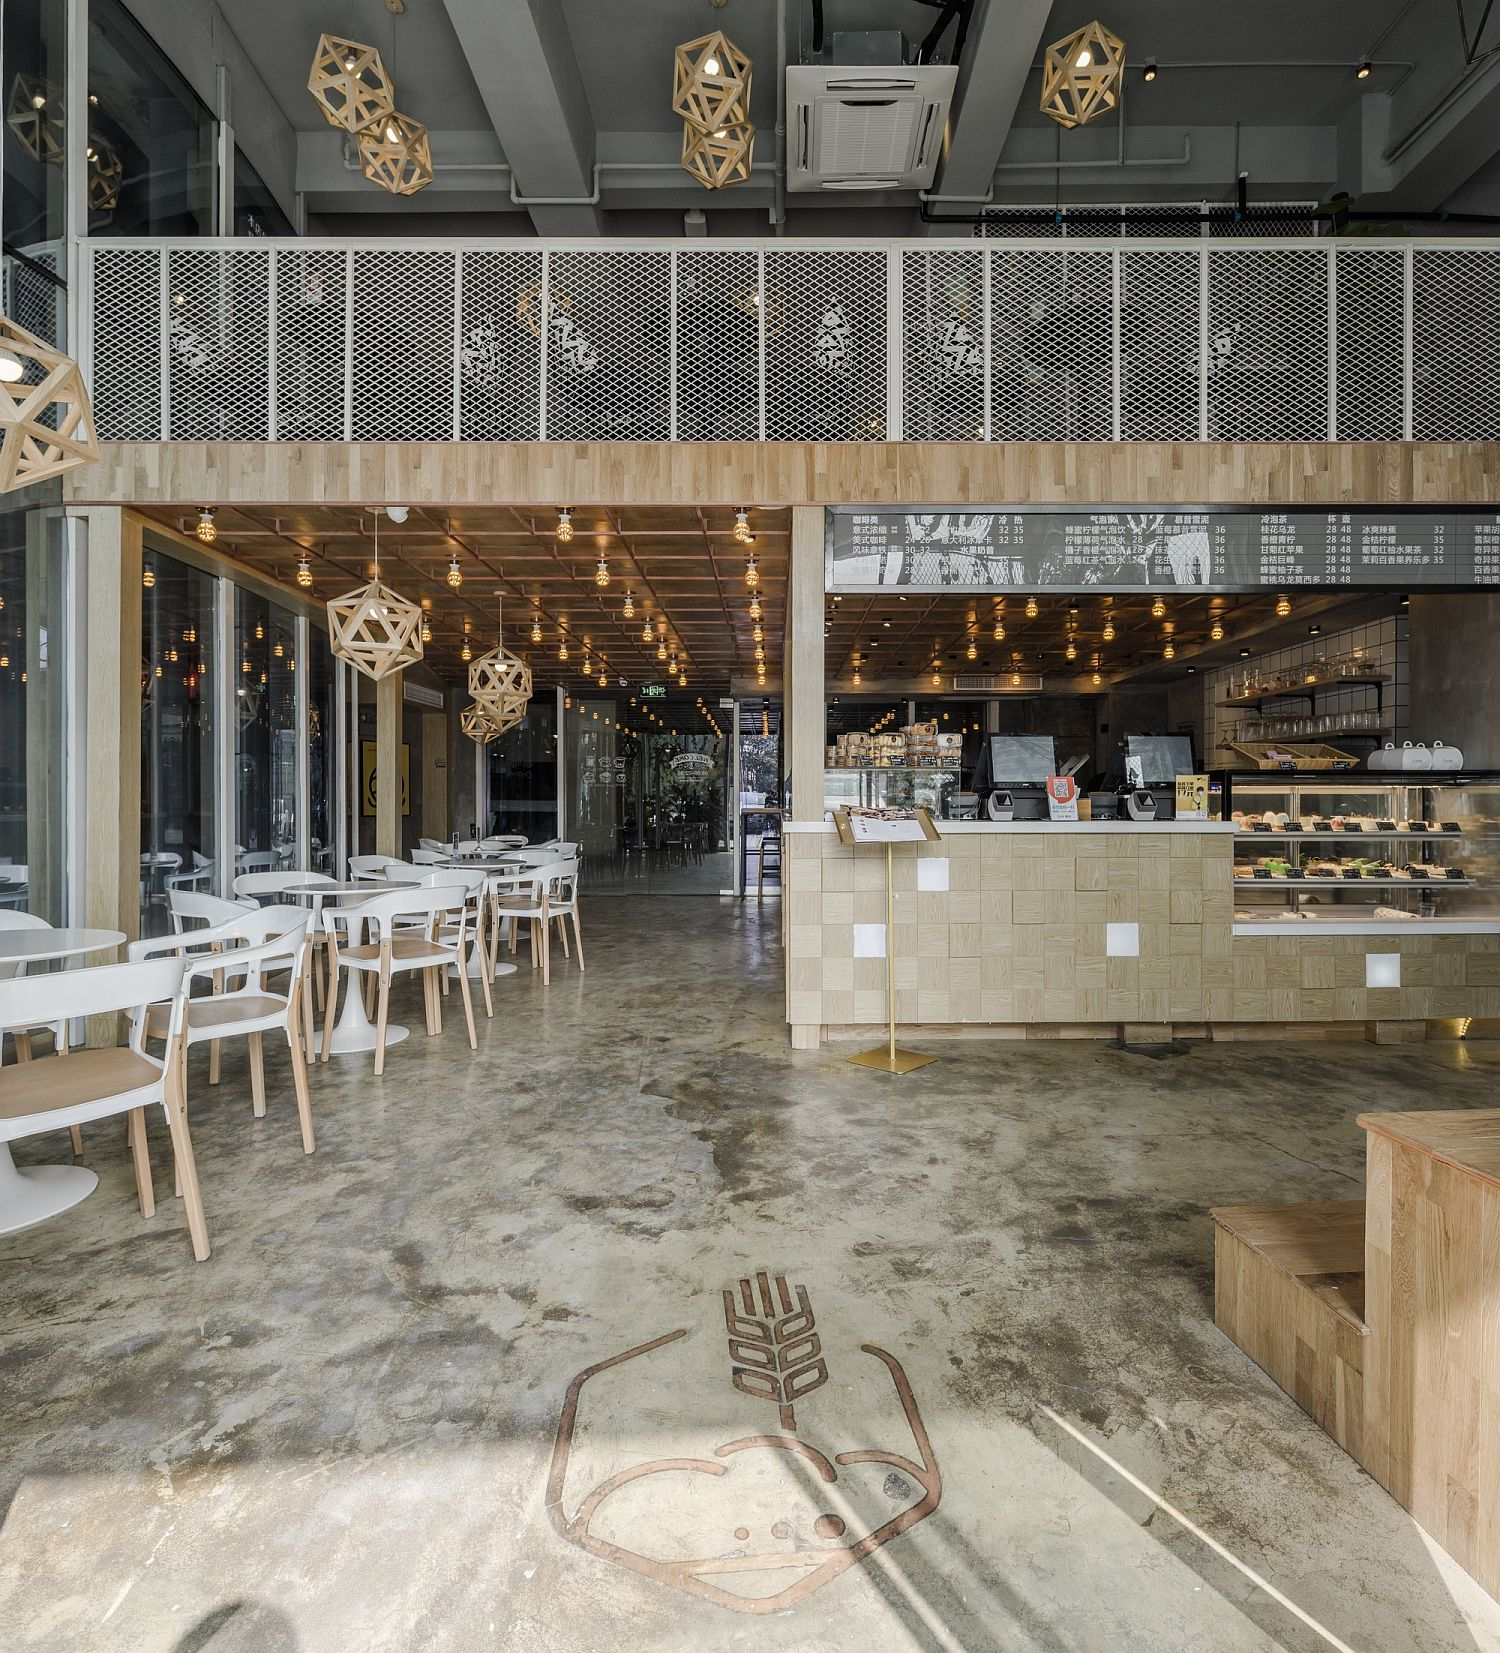 Original Bakery in China with a ModernIndustrial Multi